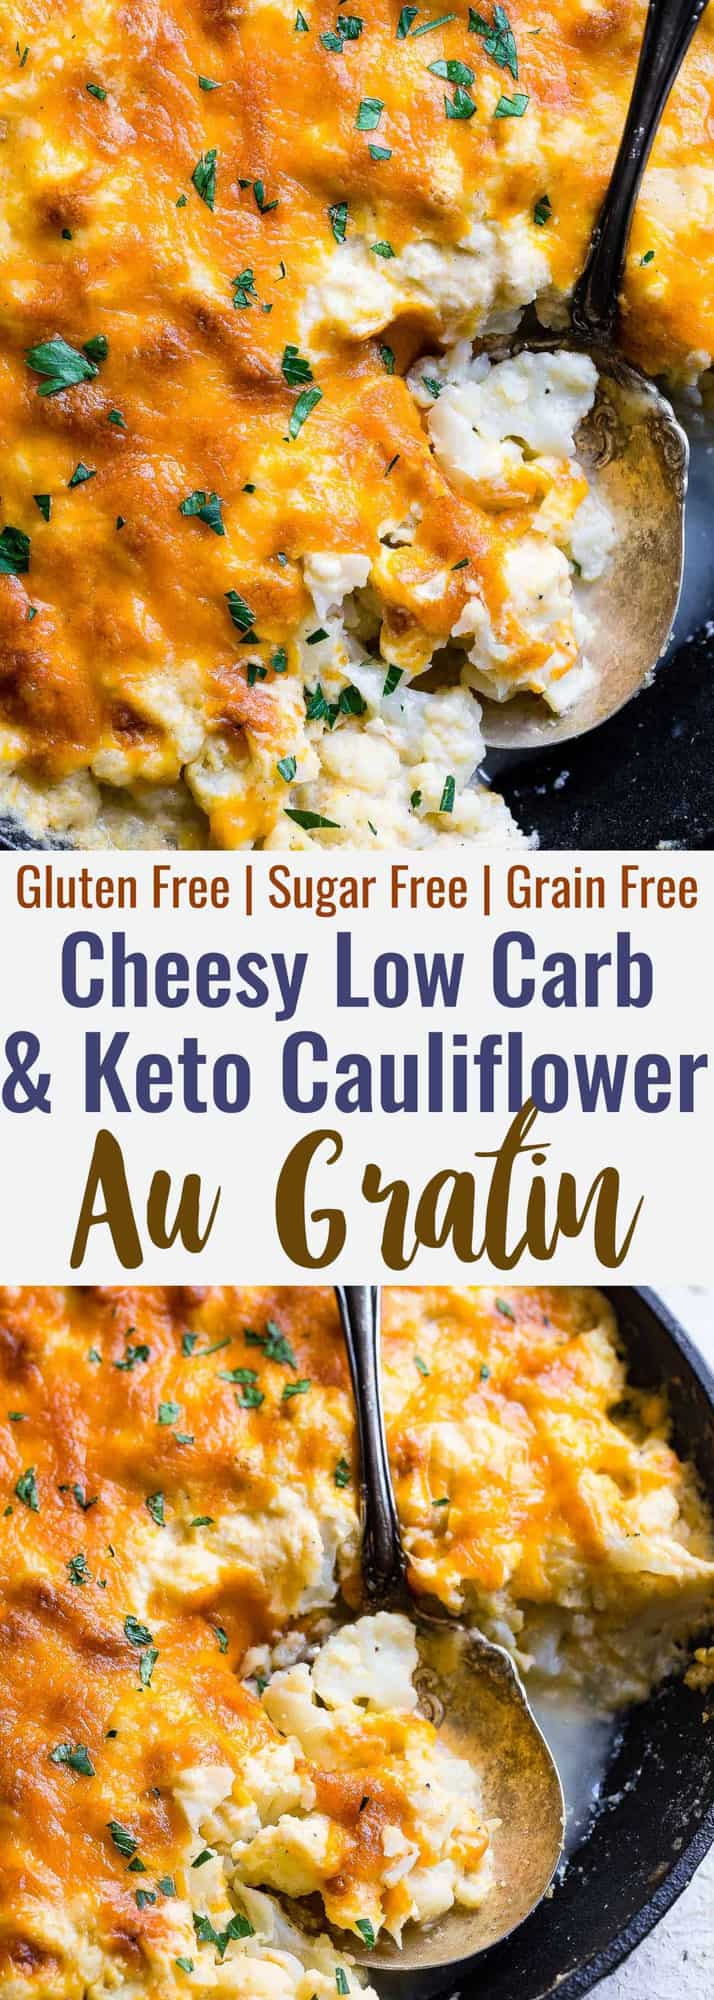 Keto Baked Cauliflower Au Gratin - This easy, healthy and keto friendly Low Carb Baked Cauliflower Au Gratin is a gluten free, delicious side dish that even the pickiest of eaters will love! Only 6 ingredients and SO cheesy! | #Foodfaithfitness | #Keto #lowcarb #Glutenfree #Healthy #Grainfree